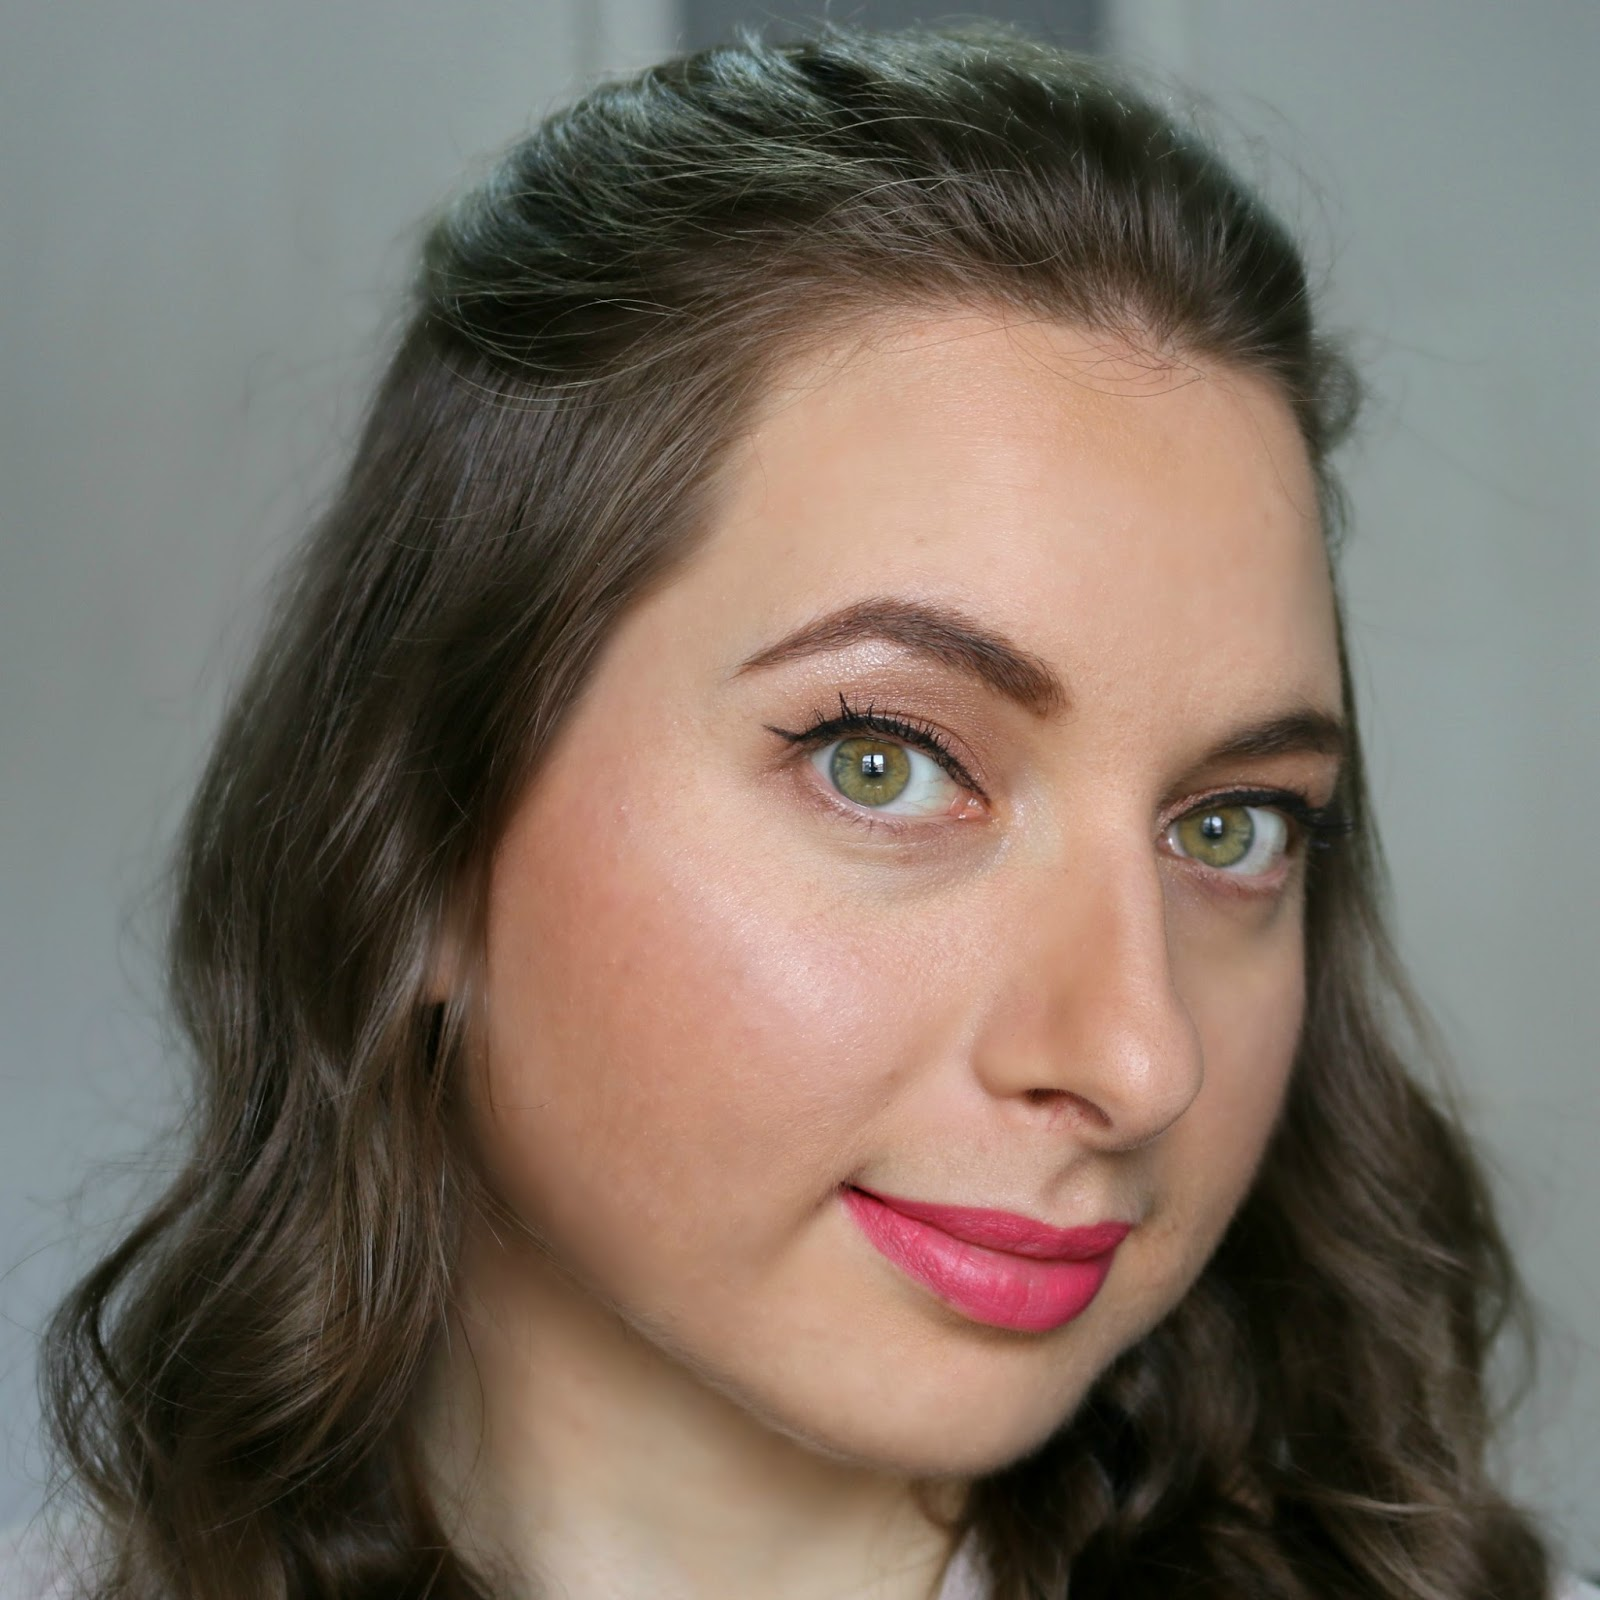 Yves Rocher Spring Makeup Look